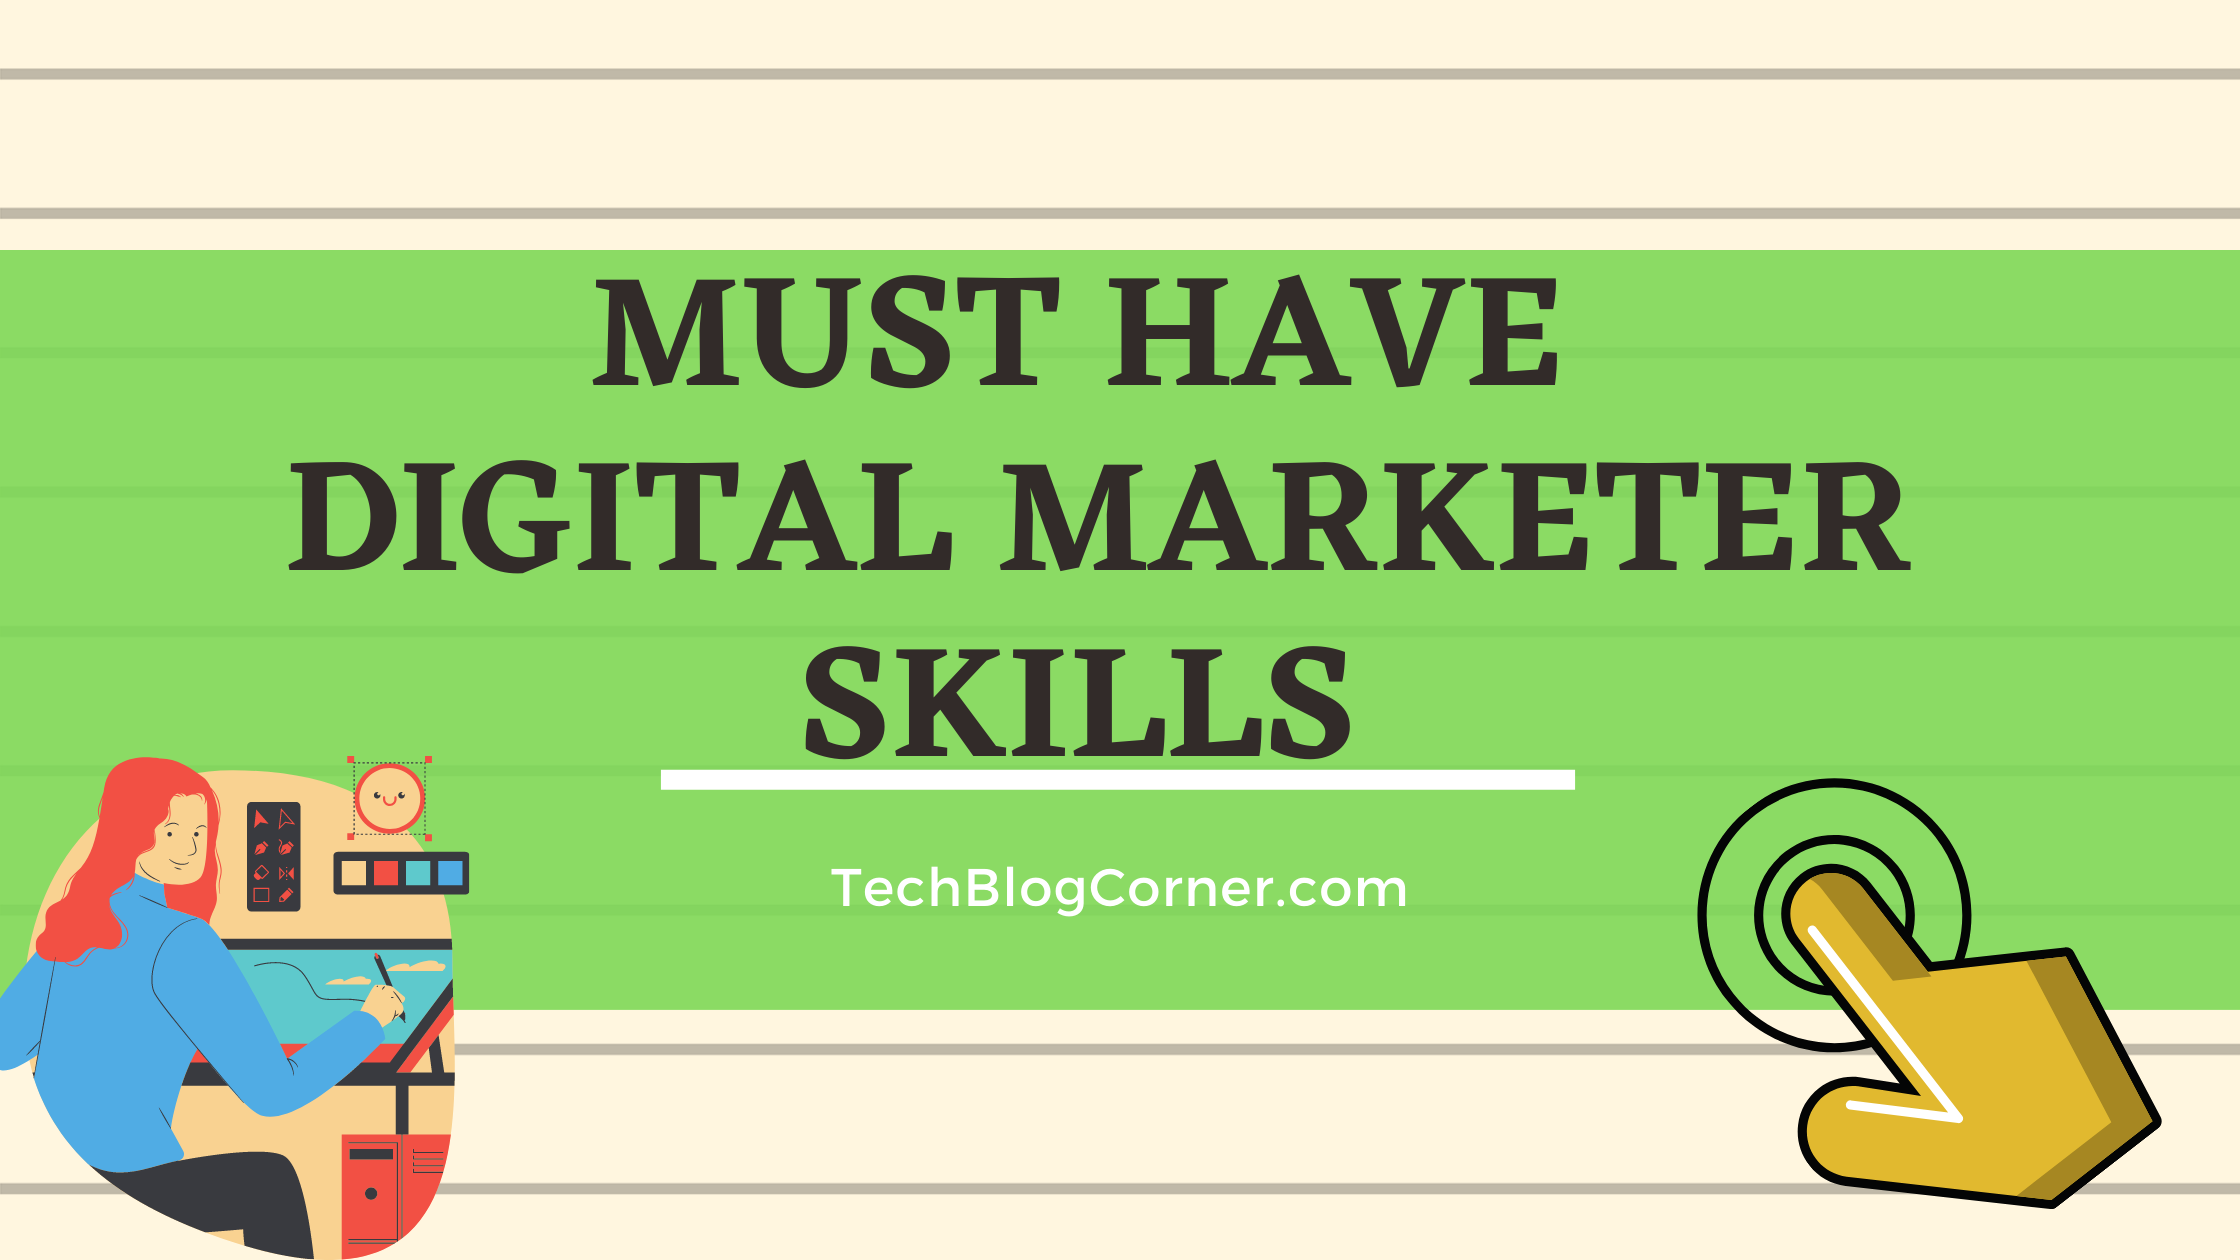 Digital-Marketer-skills